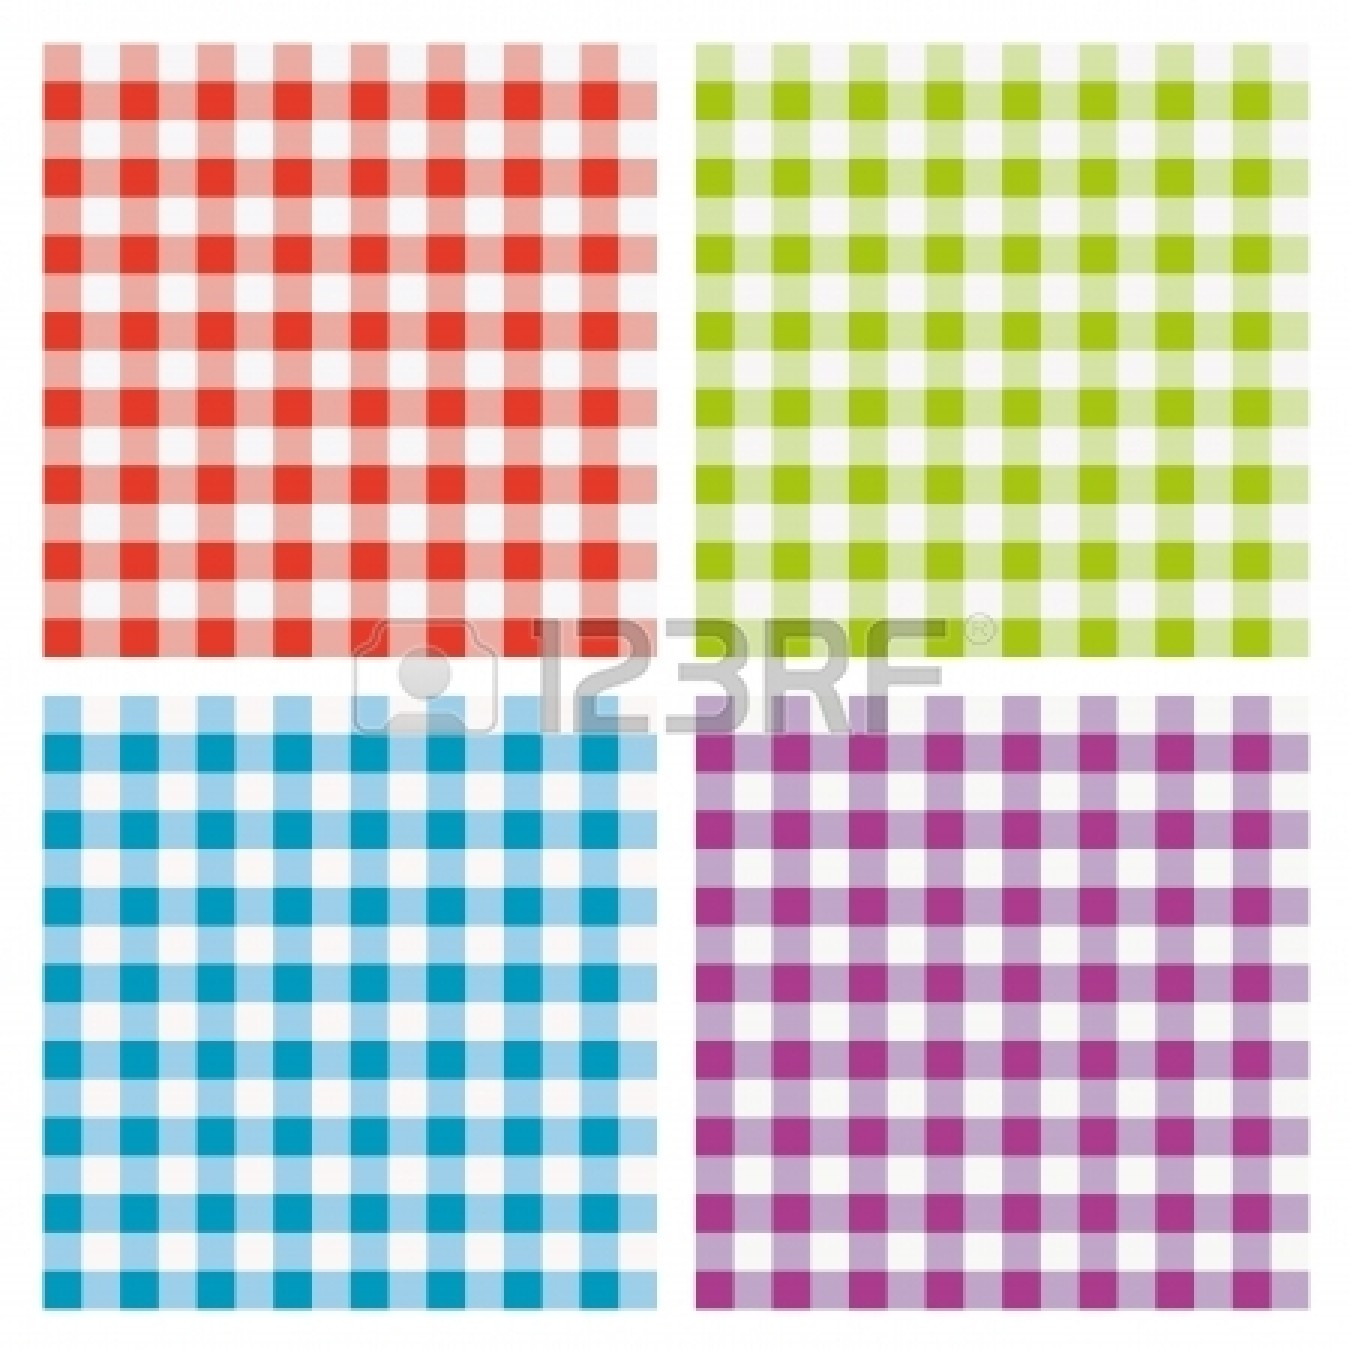 Picnic mat clipart free stock Picnic Pictures | Free download best Picnic Pictures on ... free stock